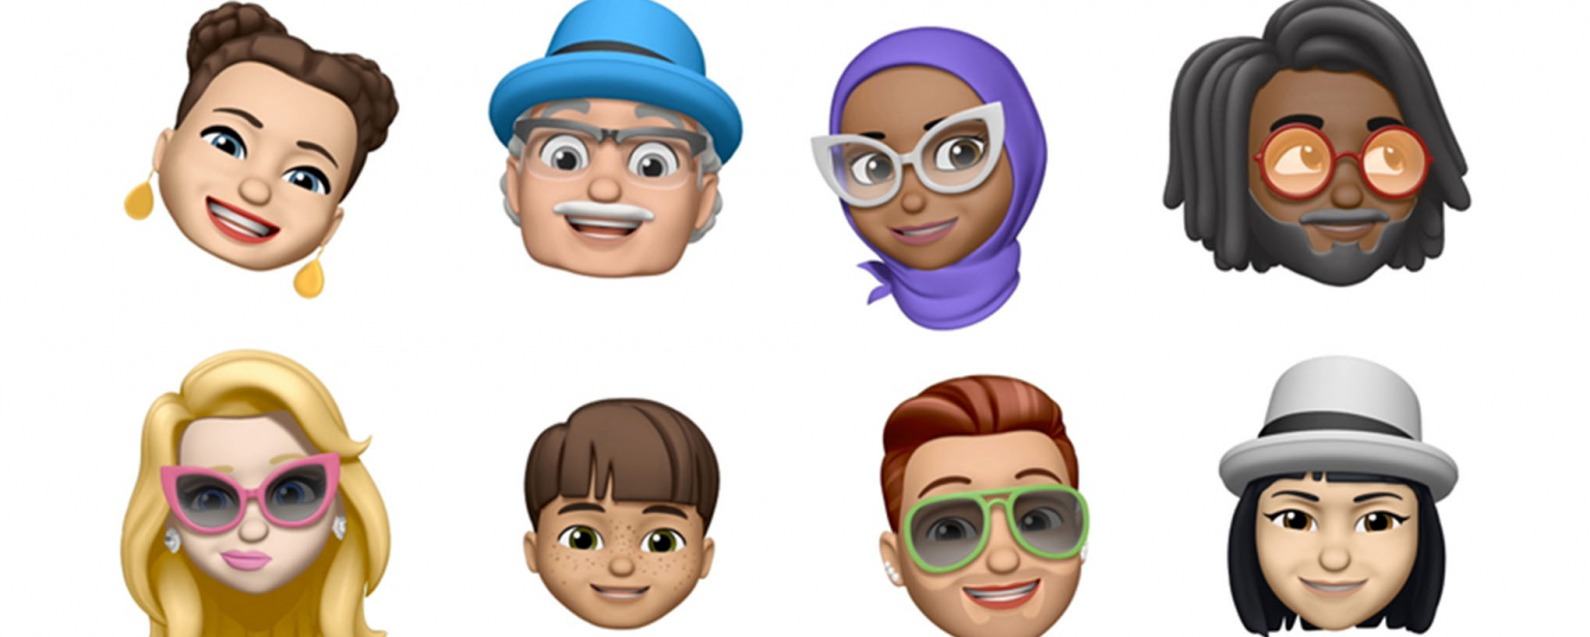 How to make face emoji on iphone xs